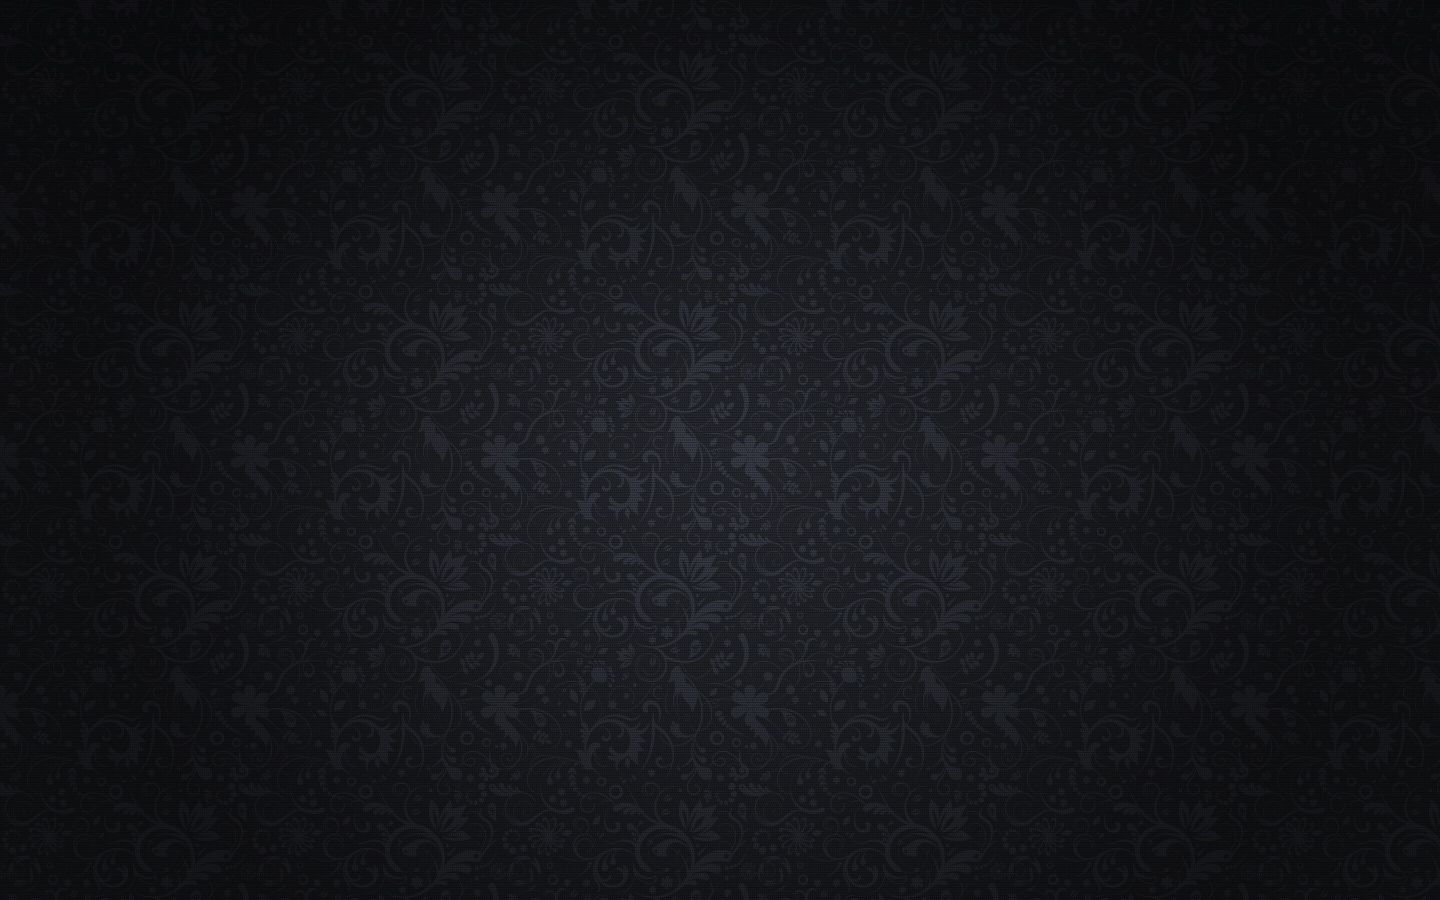 Black Abstract Background Download HD Wallpapers 1440x900